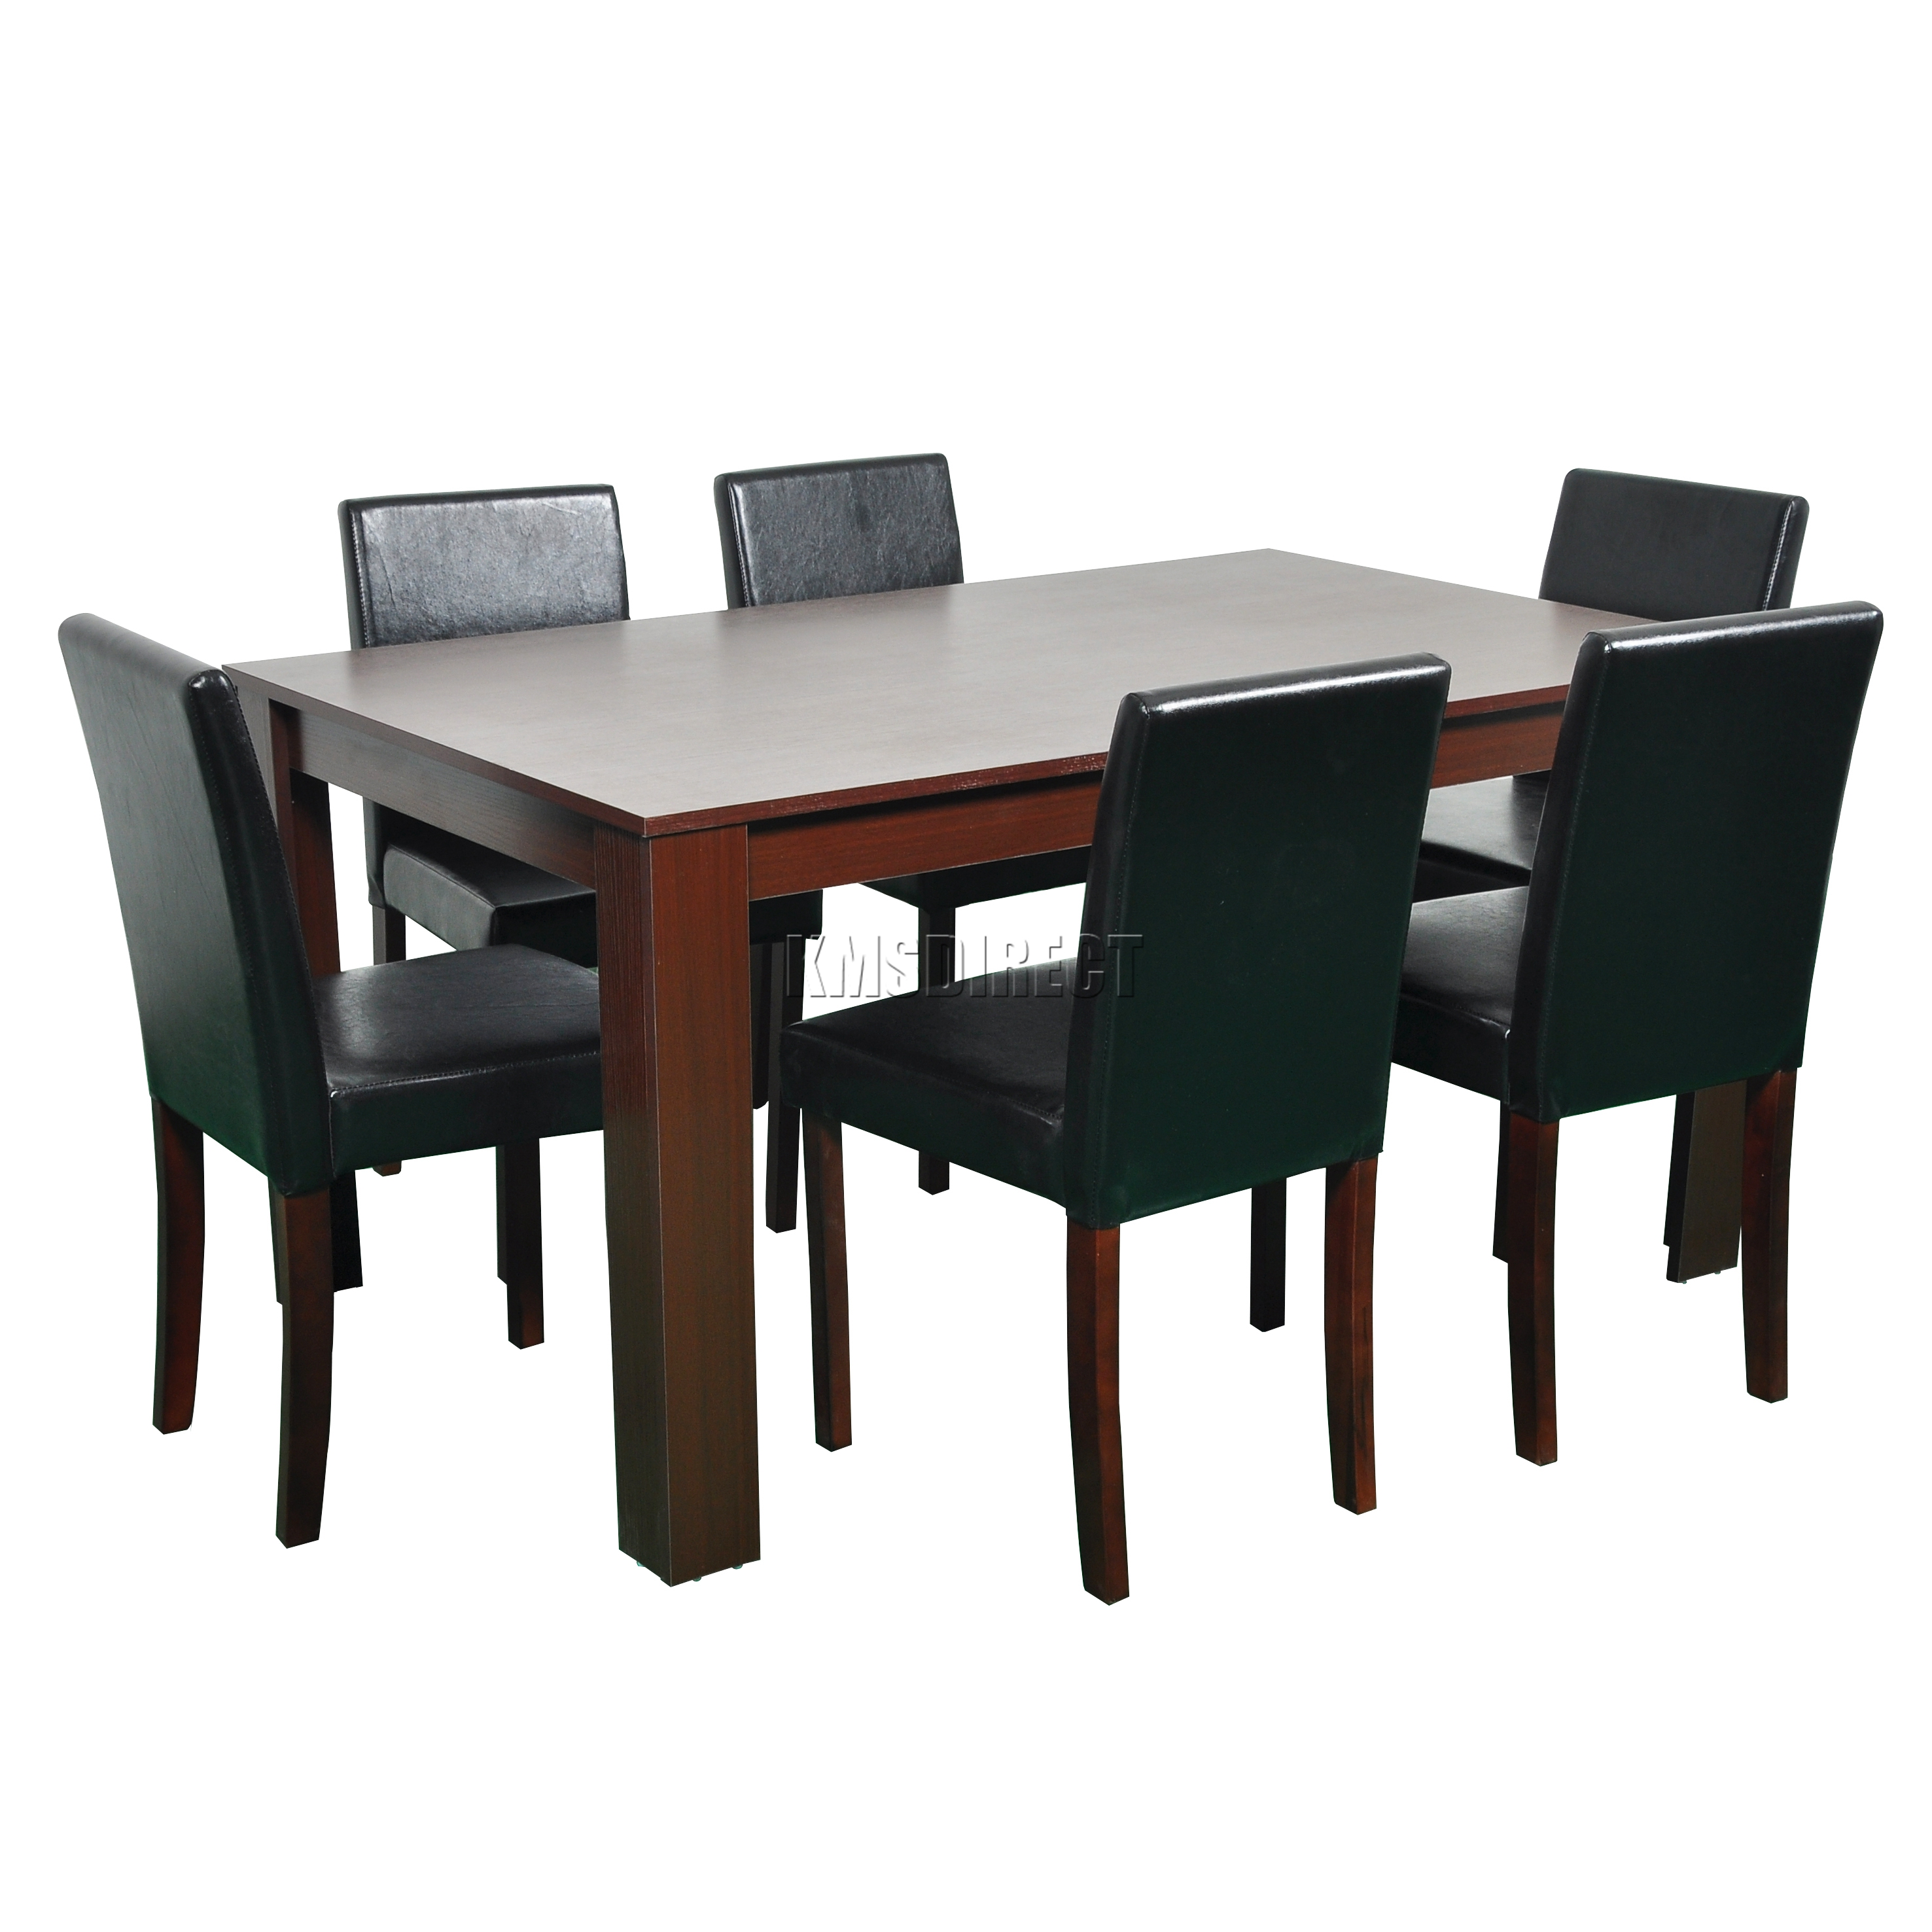 foxhunter wooden dining table and 6 pu faux leather chairs. Black Bedroom Furniture Sets. Home Design Ideas